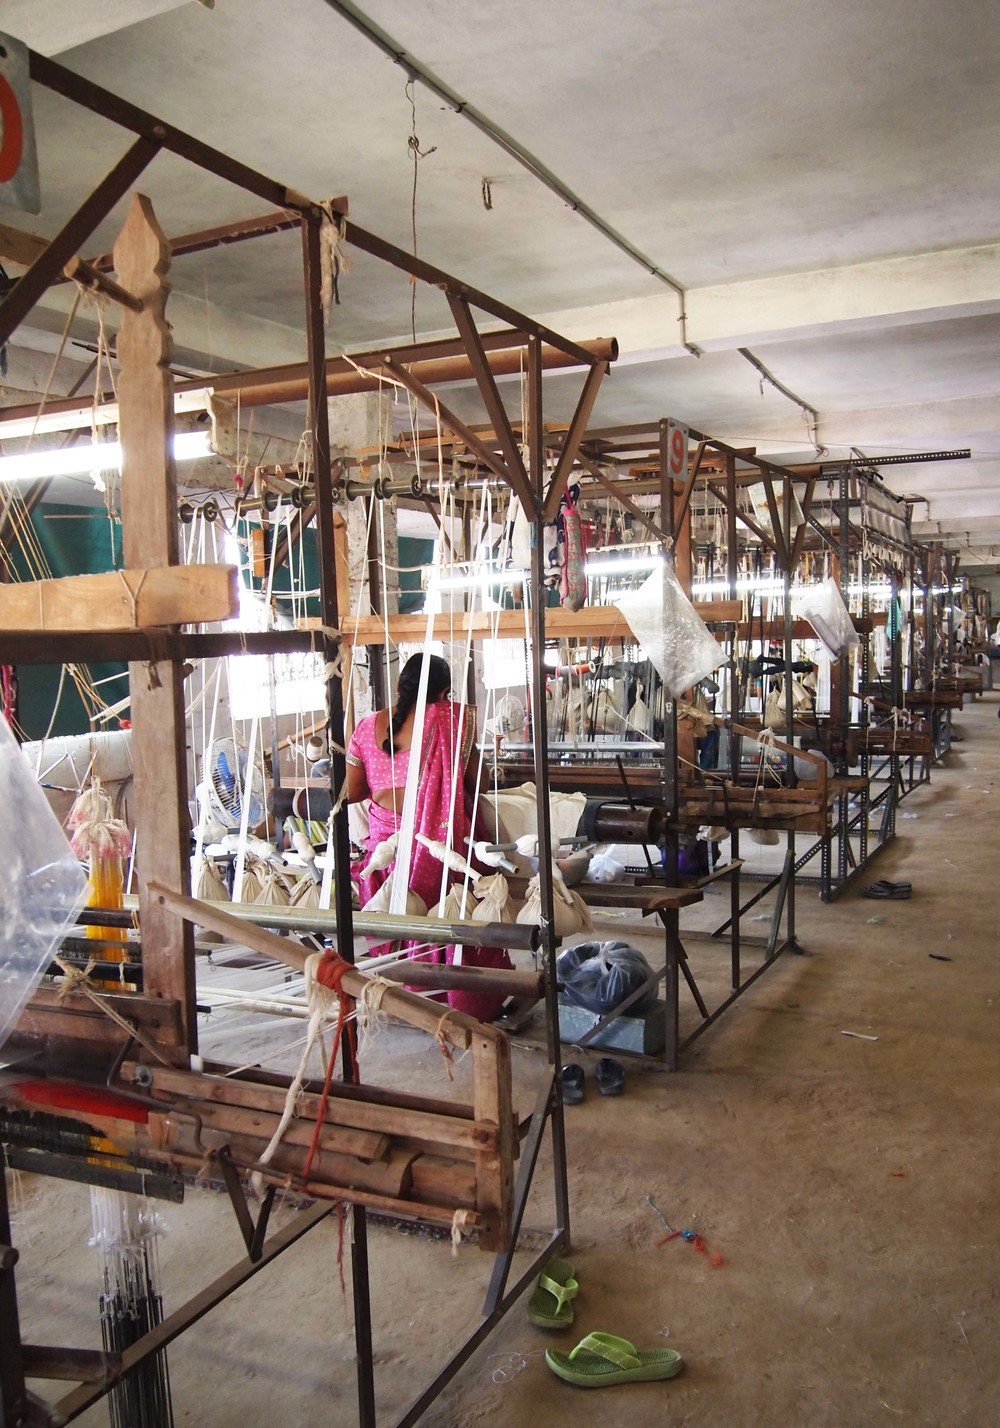 The airy studio space filled with looms in action